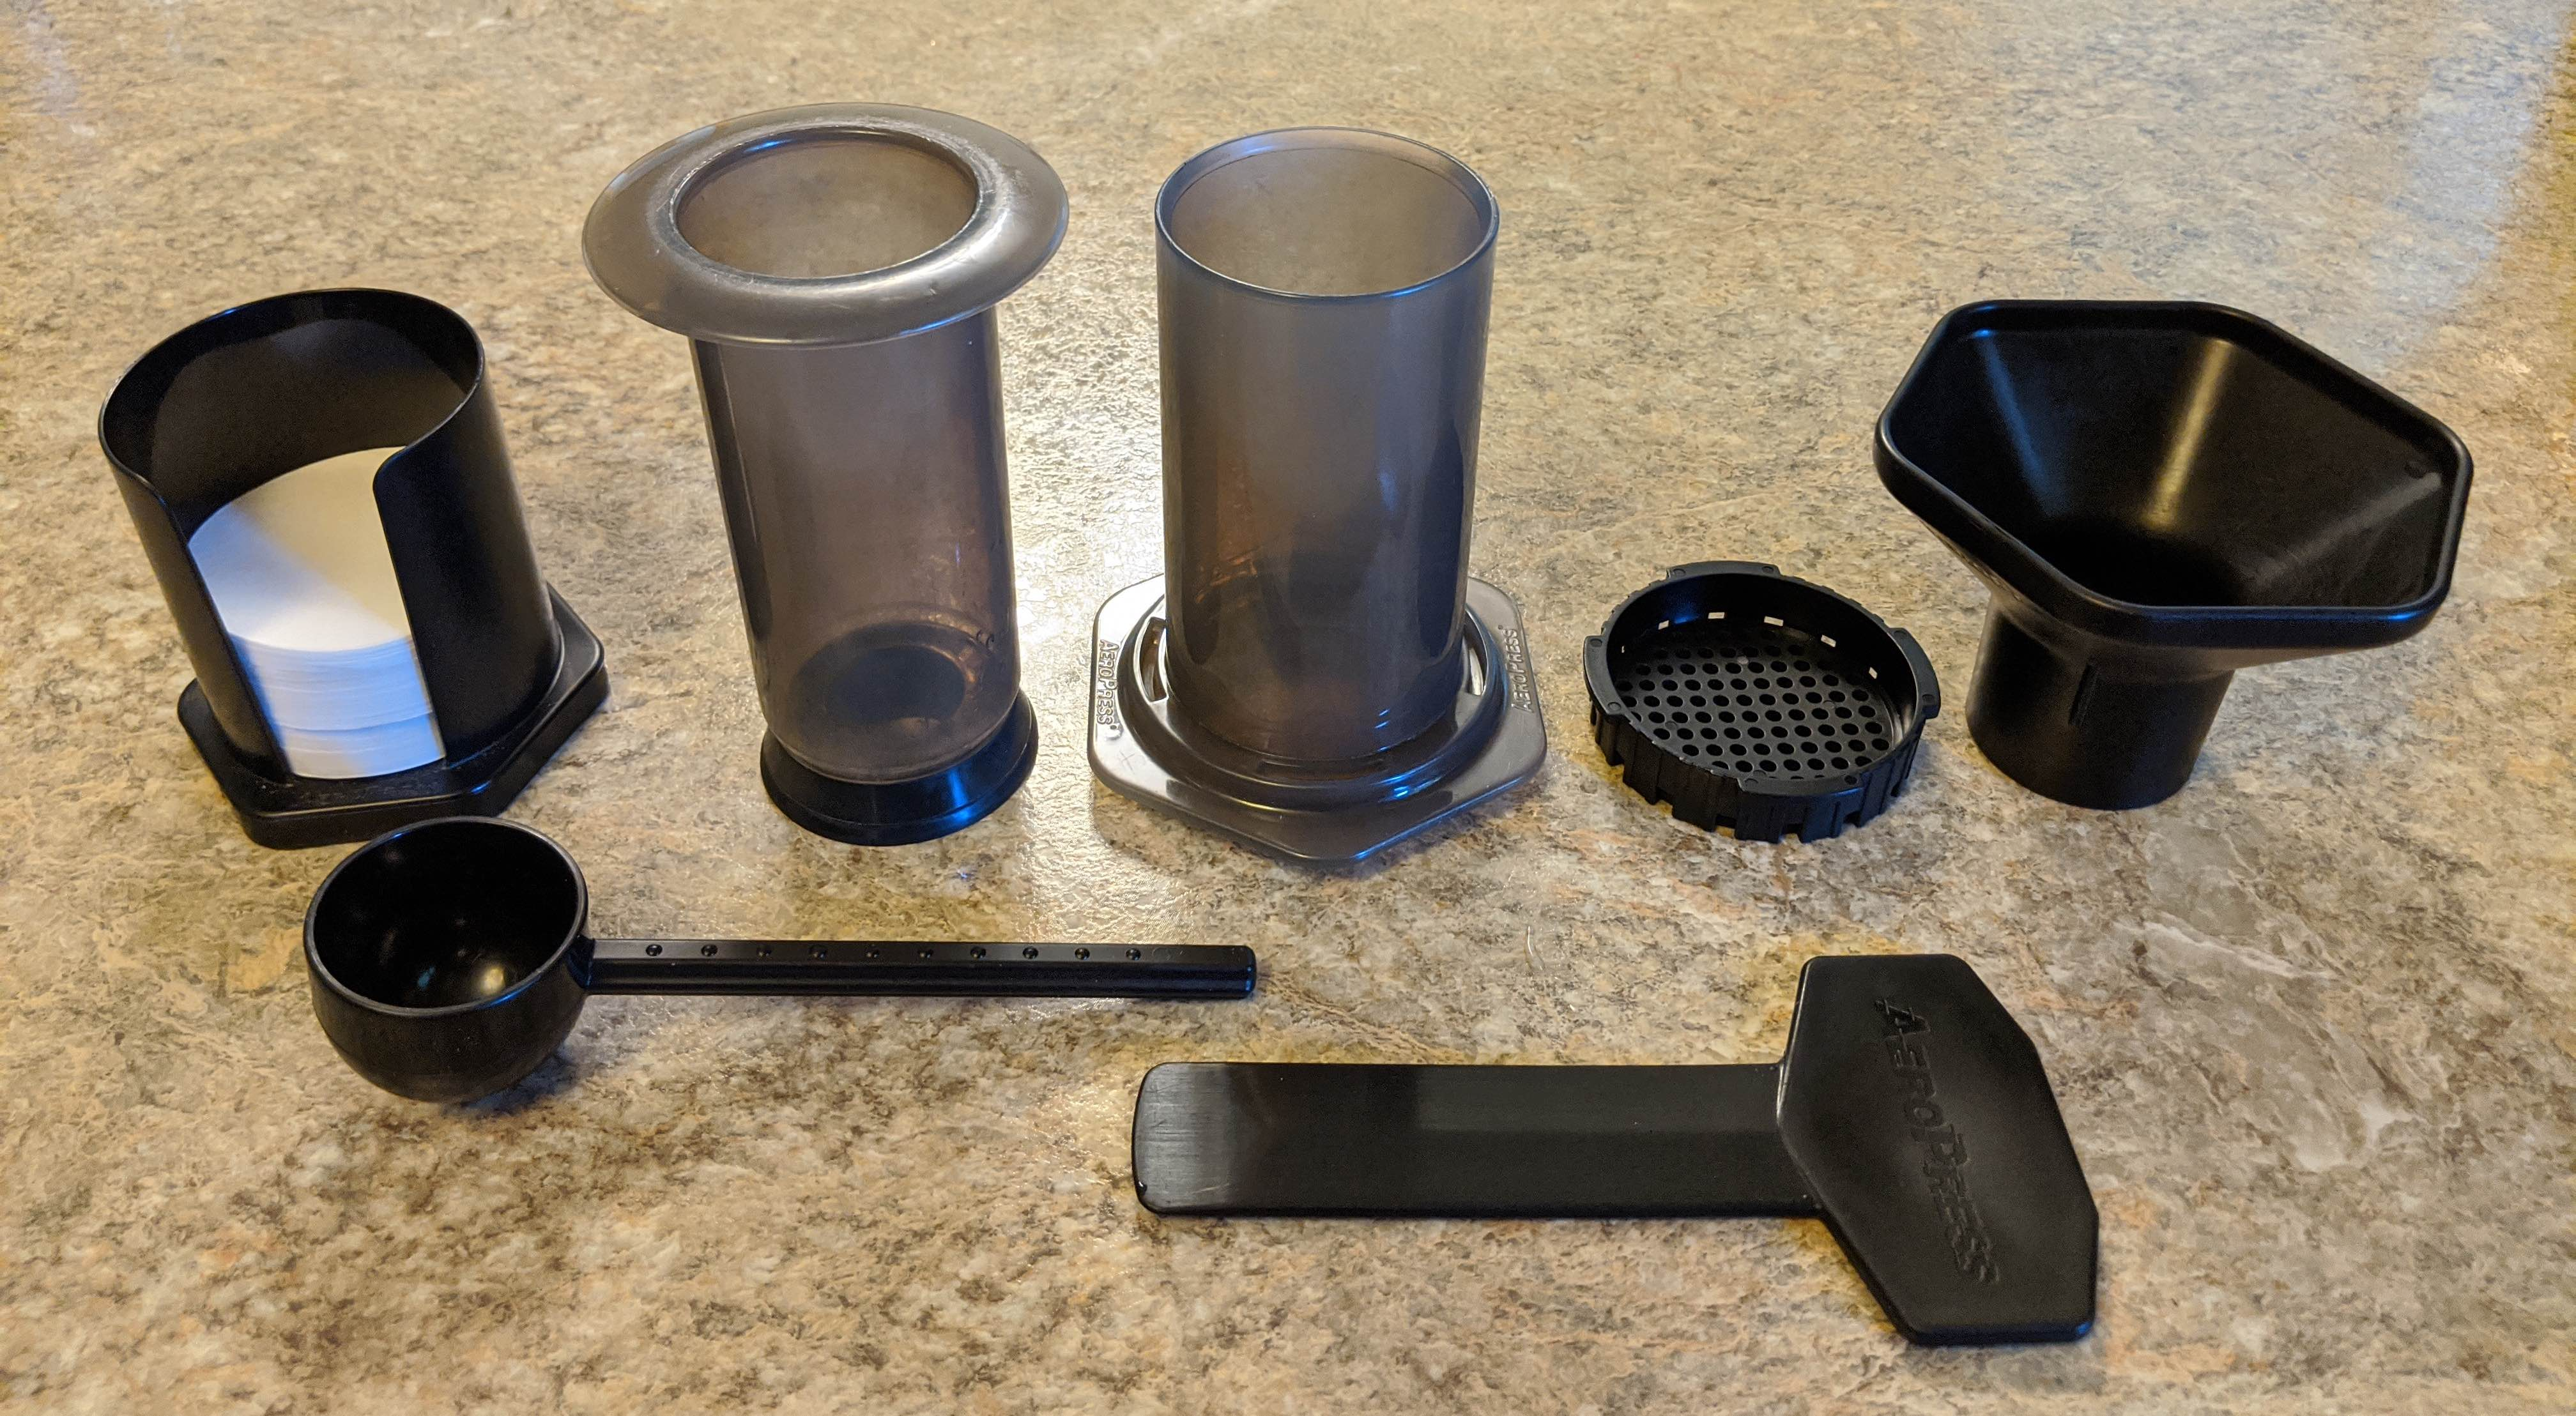 Aeropress components: filters, the press, filter holder, funnel, scoop, paddle.